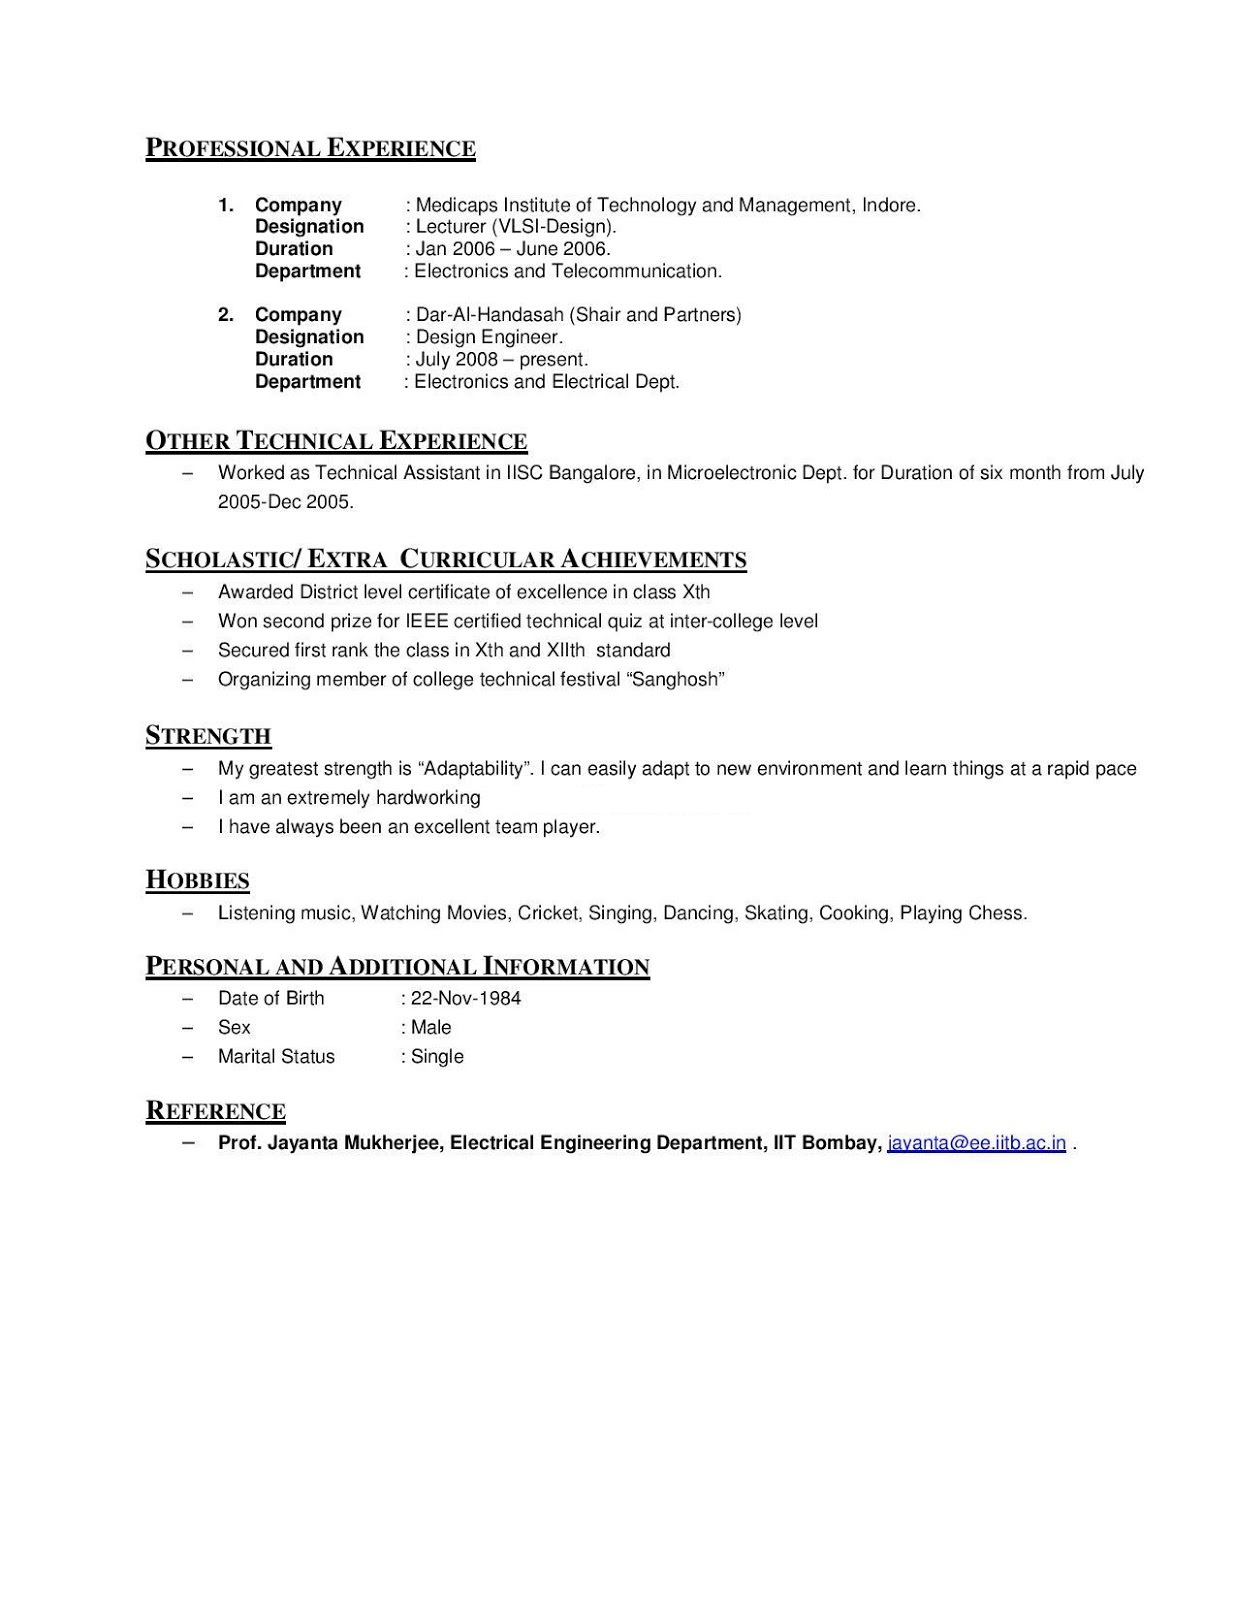 Resume help hobbies and interests